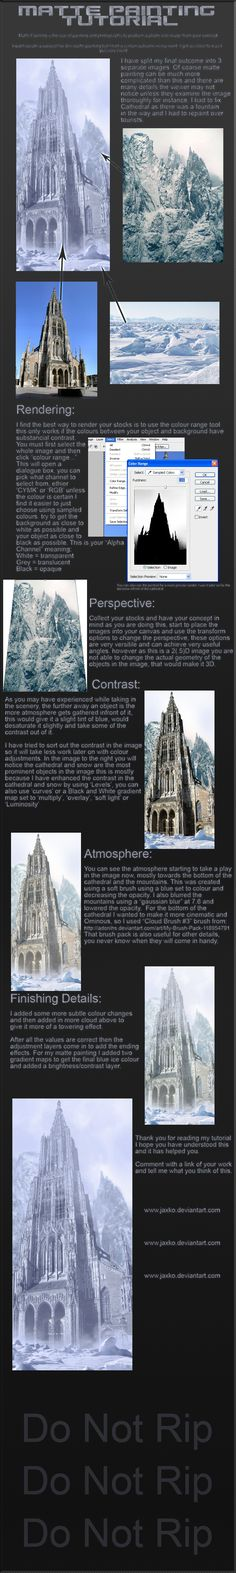 Matte Painting Tutorial by ~jaxko on deviantART